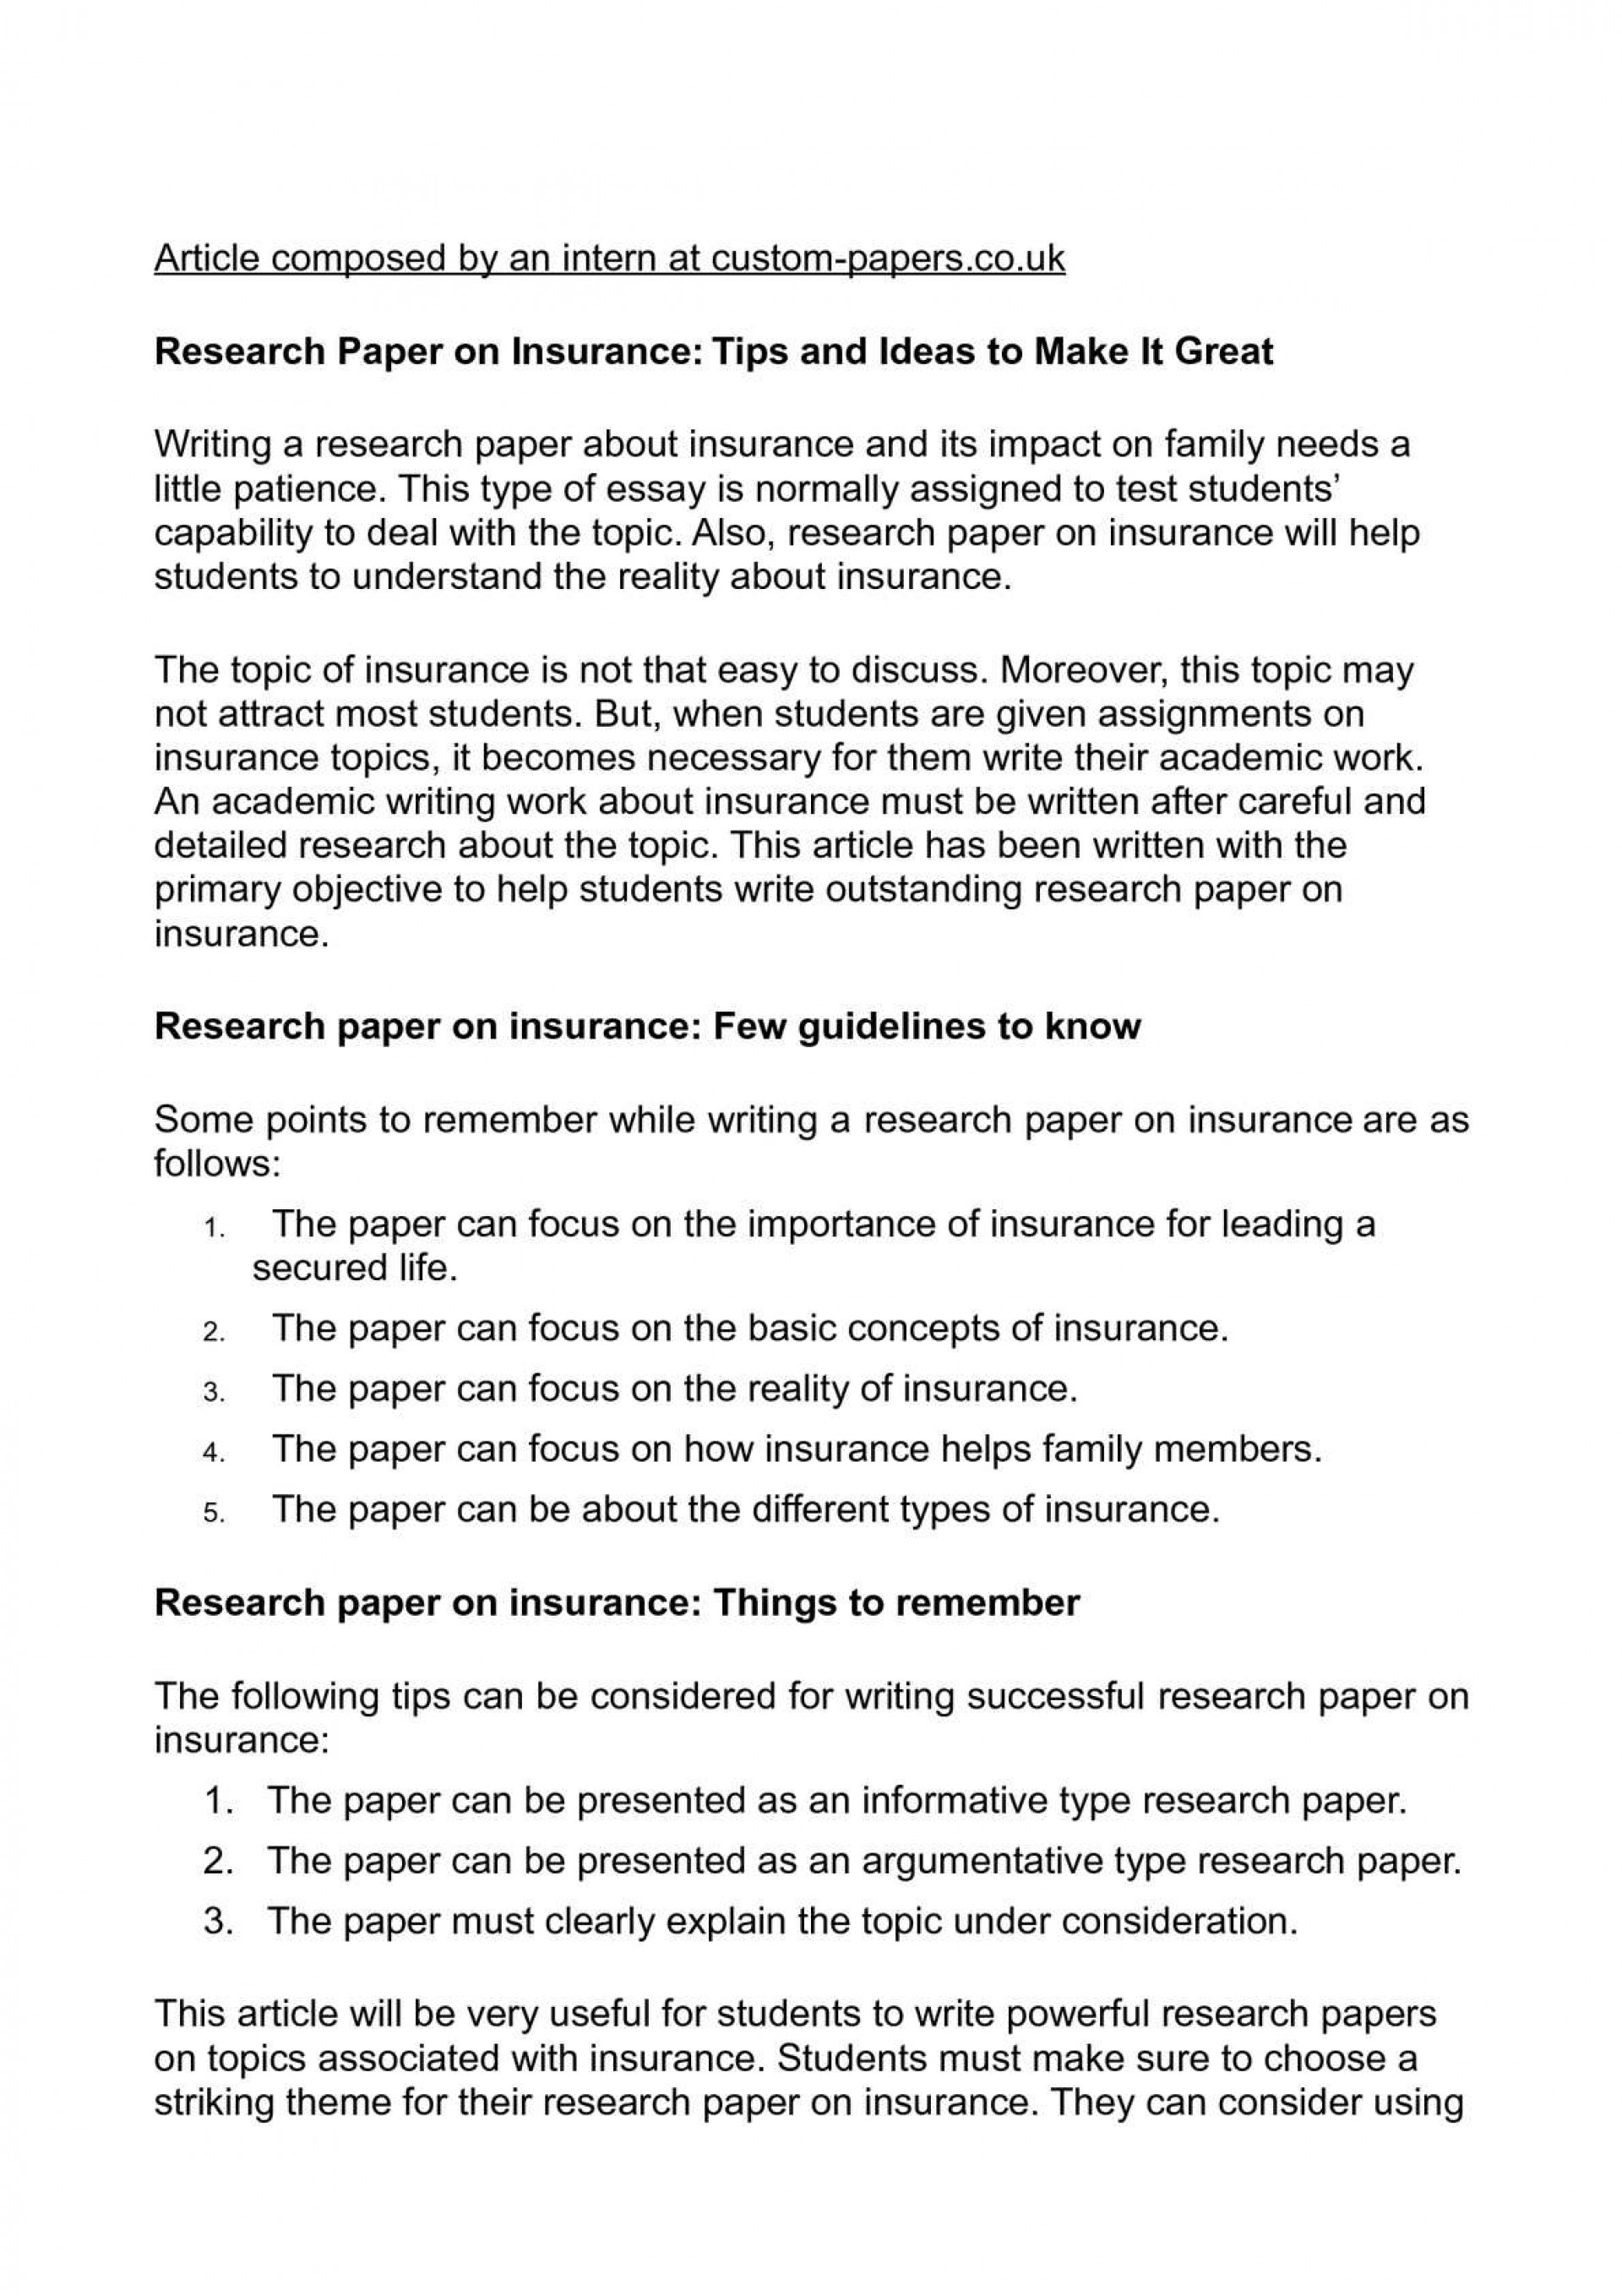 010 Ideas For Research Paper Shocking A Topics Writing Good Social Psychology 1920